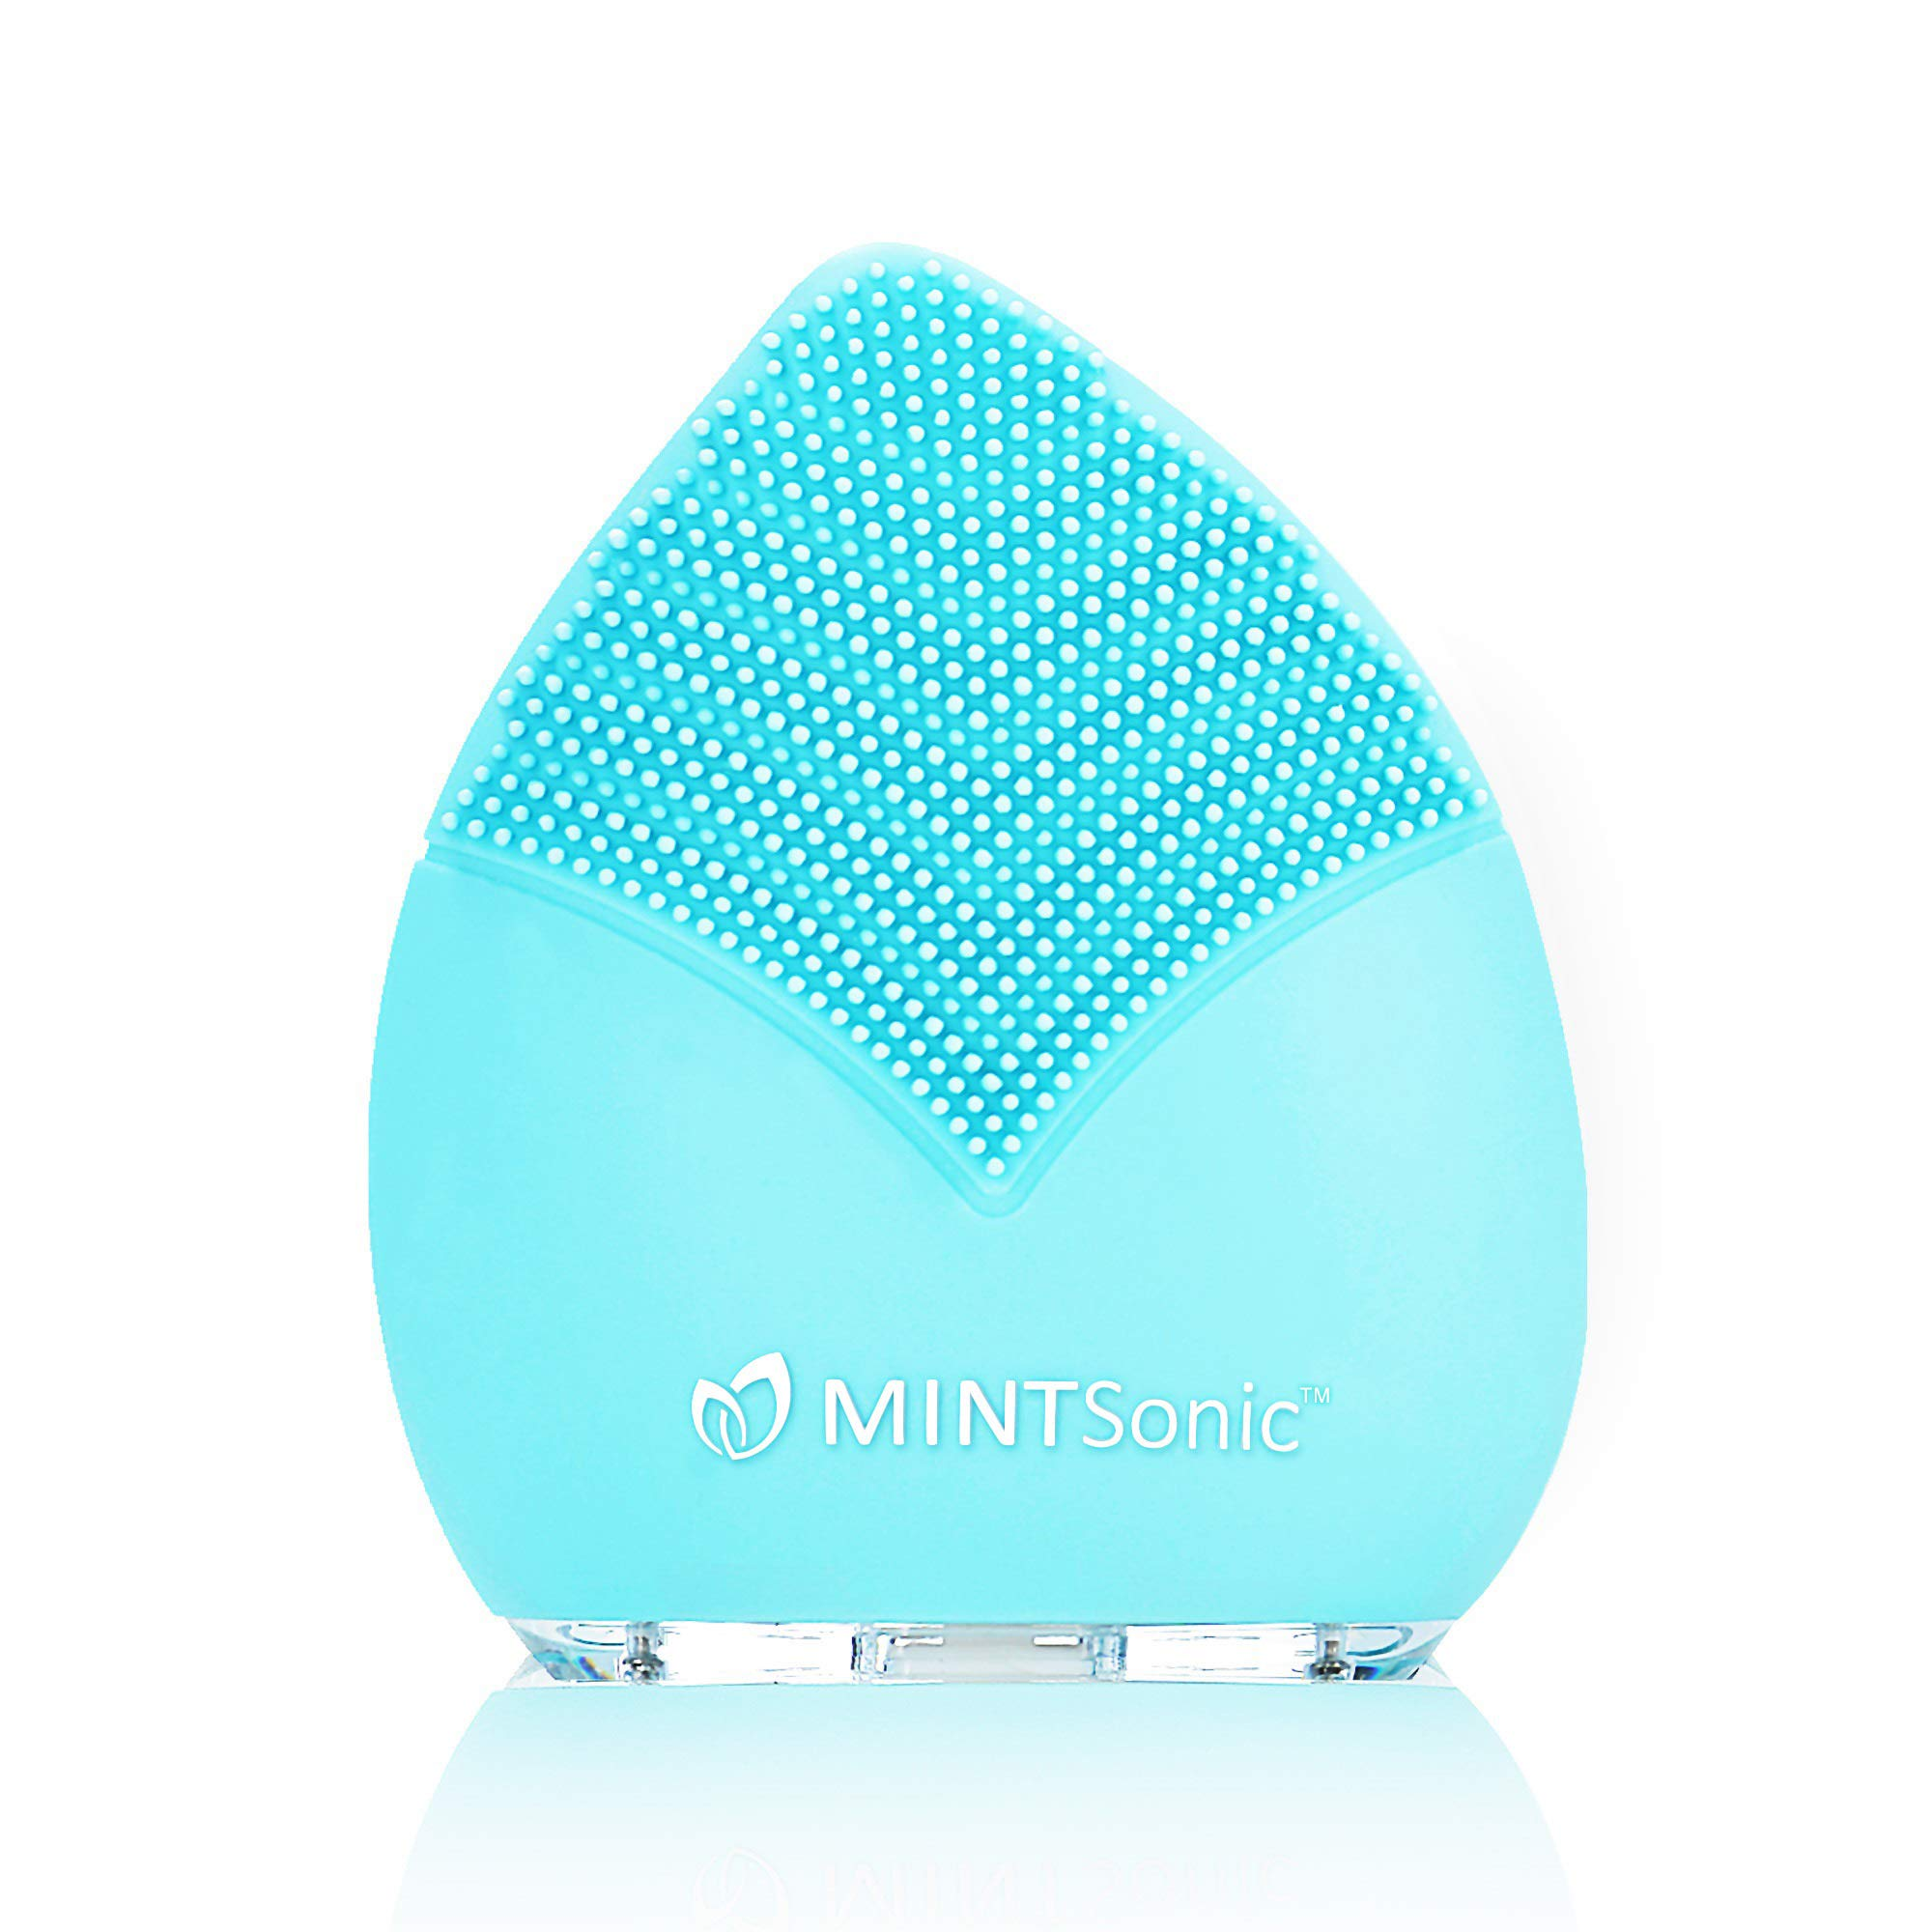 Deep Facial Cleansing Brush Rechargeable Waterproof - Gentle Sonic Face Cleaner - Anti-Aging Skin Care Face Massager - Exfoliating Pore Minimizer to Smooth Skin Help Reduce Blackheads Acne Dark Spots